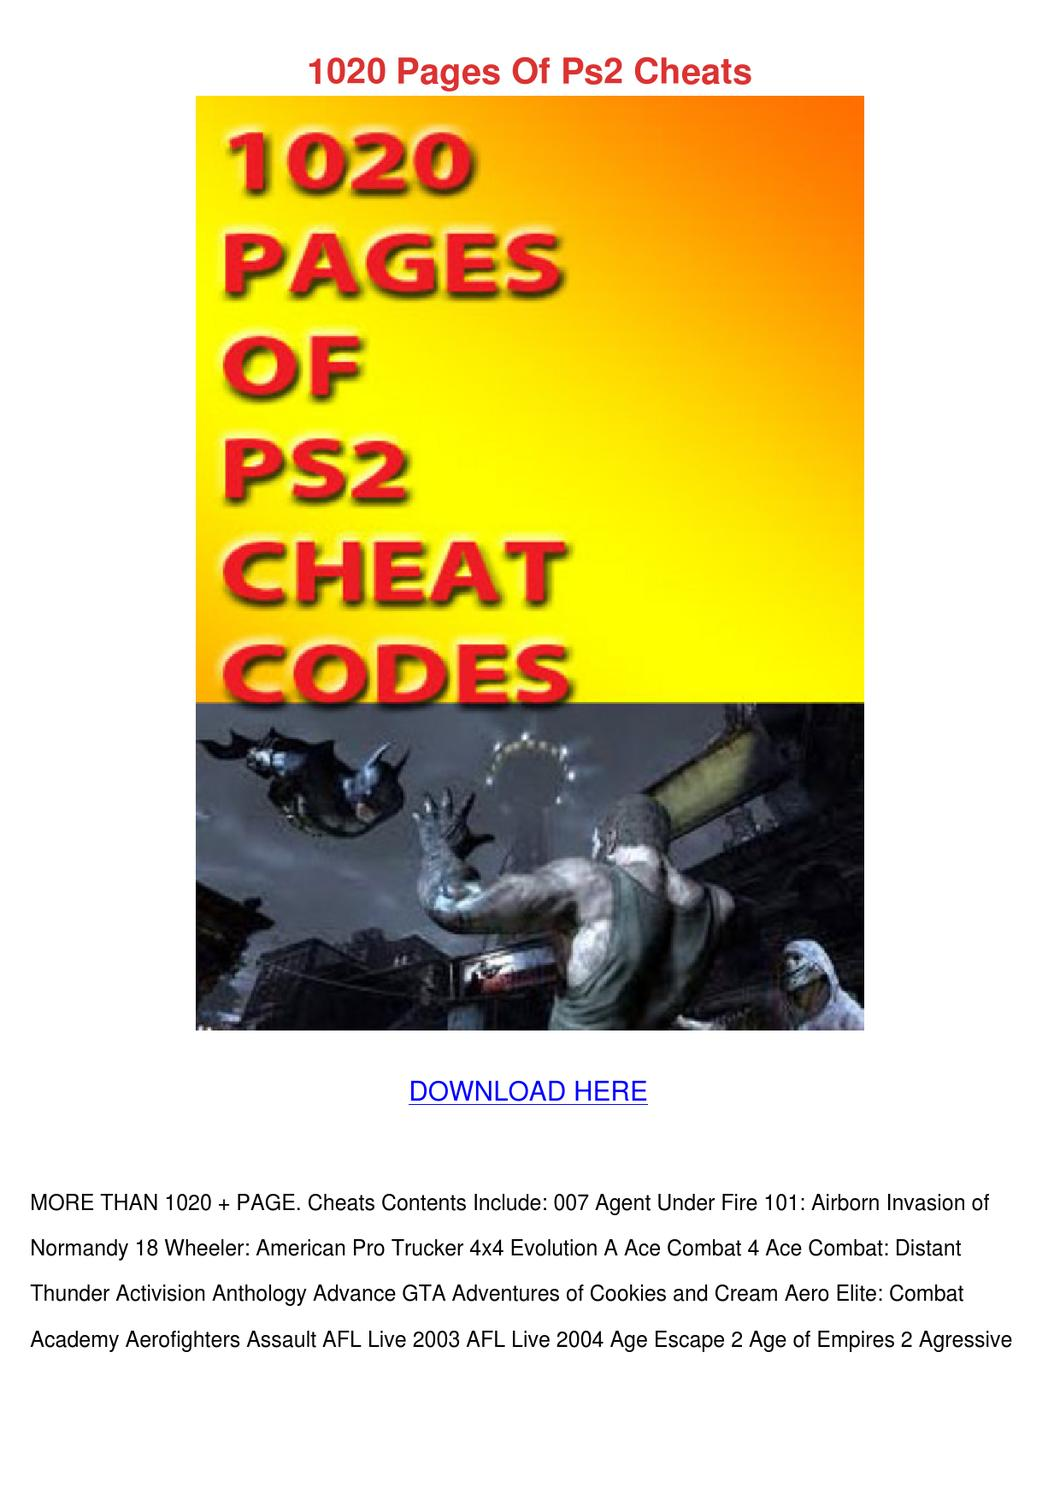 1020 Pages Of Ps2 Cheats by ChesterBunnell - issuu